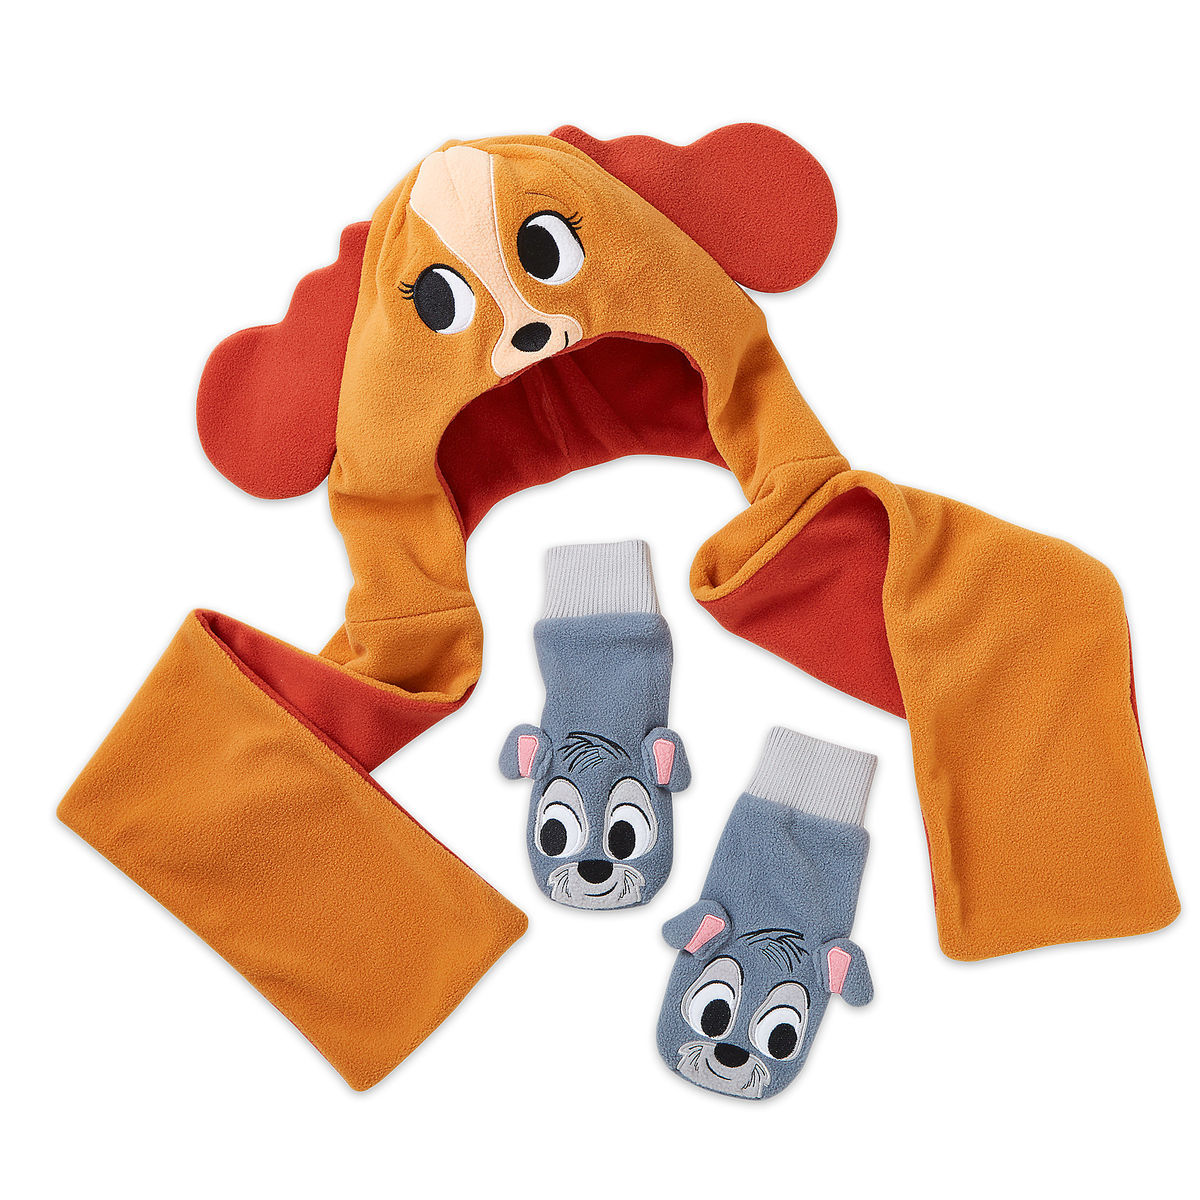 Product Image of Lady and the Tramp Warmwear Accessories Set - Disney Furrytale friends # 1